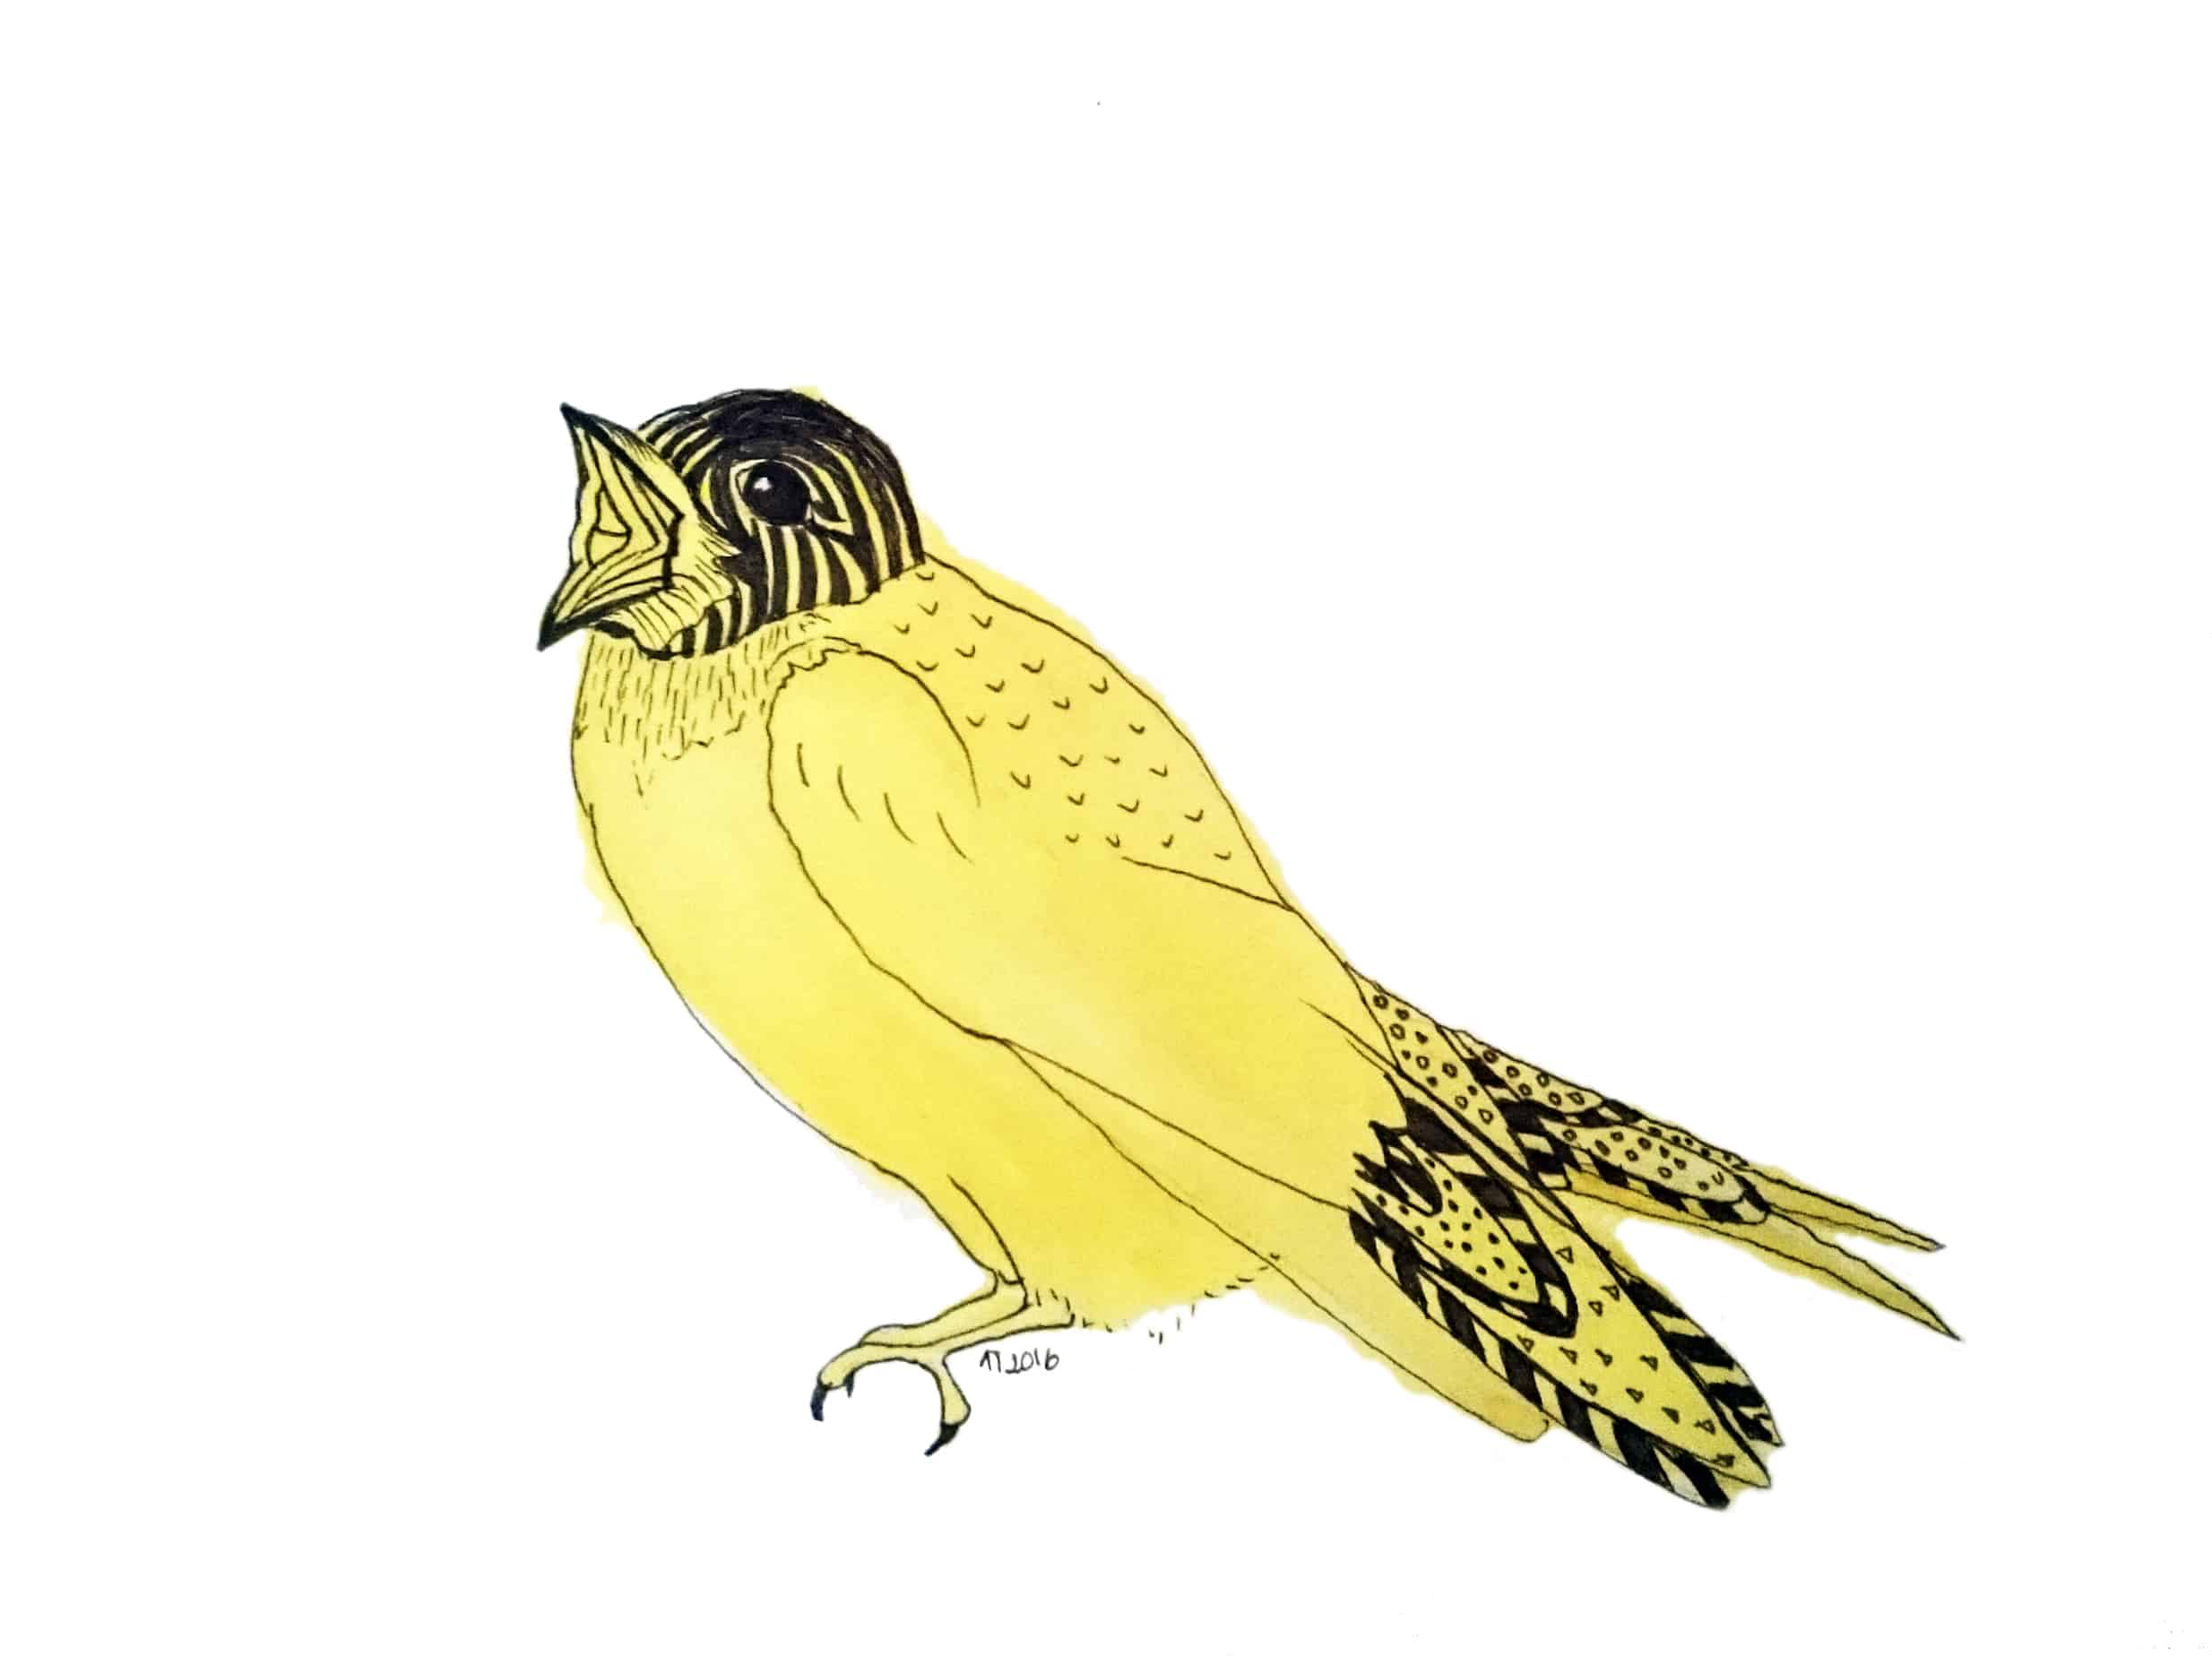 Strange Birds 6: Yellow Soprano Swallow by Linda Ursin